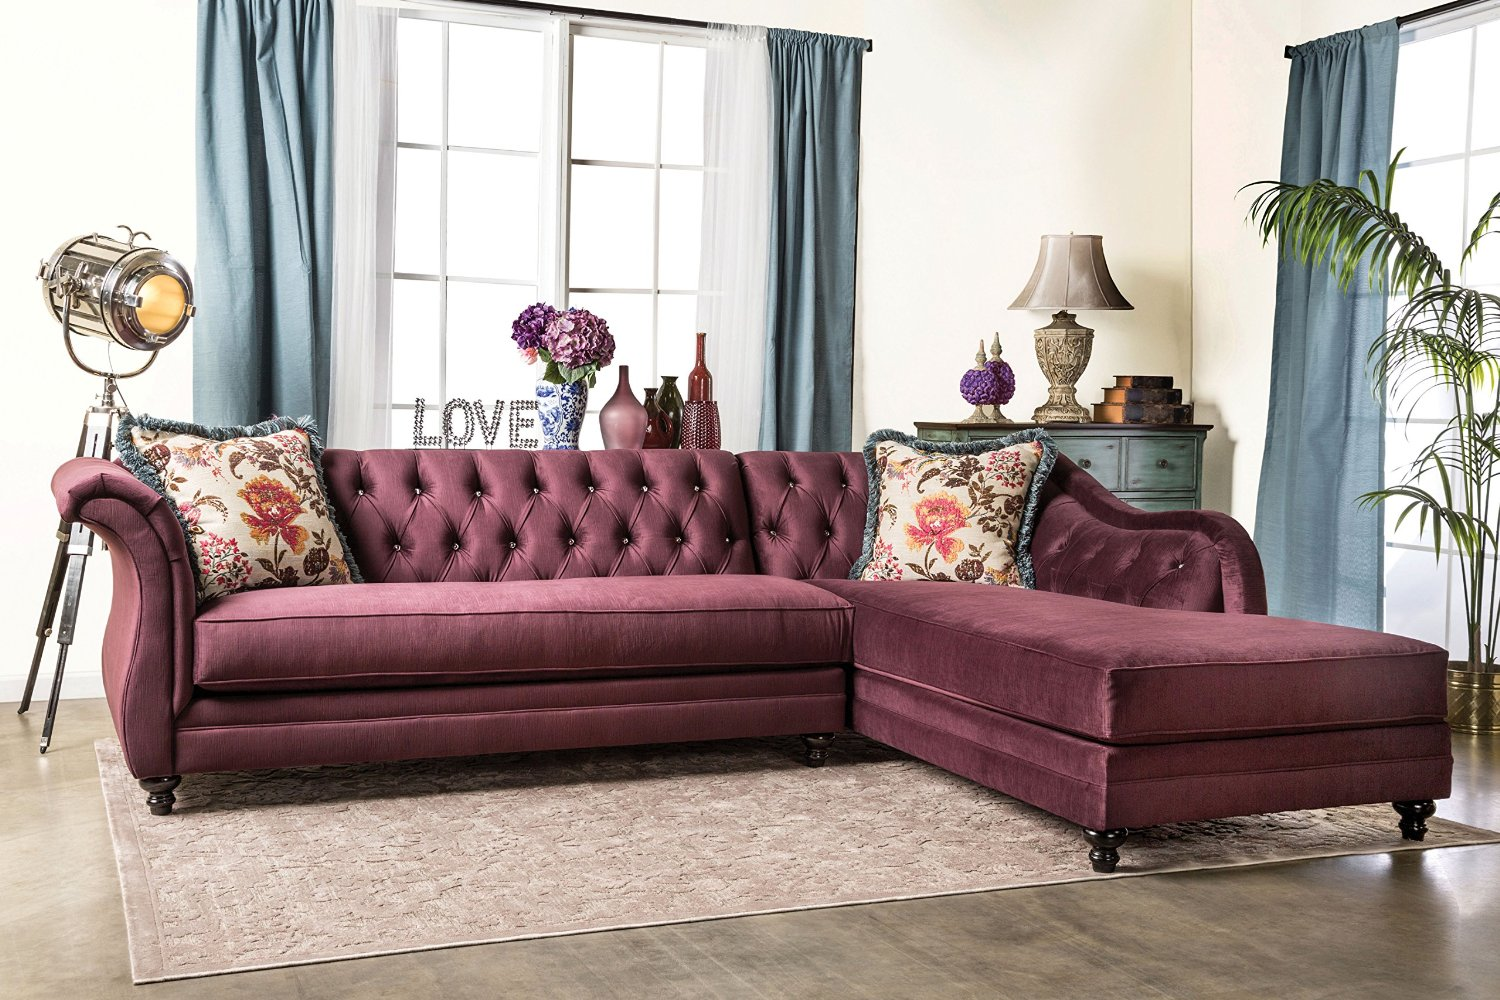 Furniture of America 2 Piece Corinee Glamorous Sectional Sofa. 25 Best Chesterfield Sofas to Buy in 2017